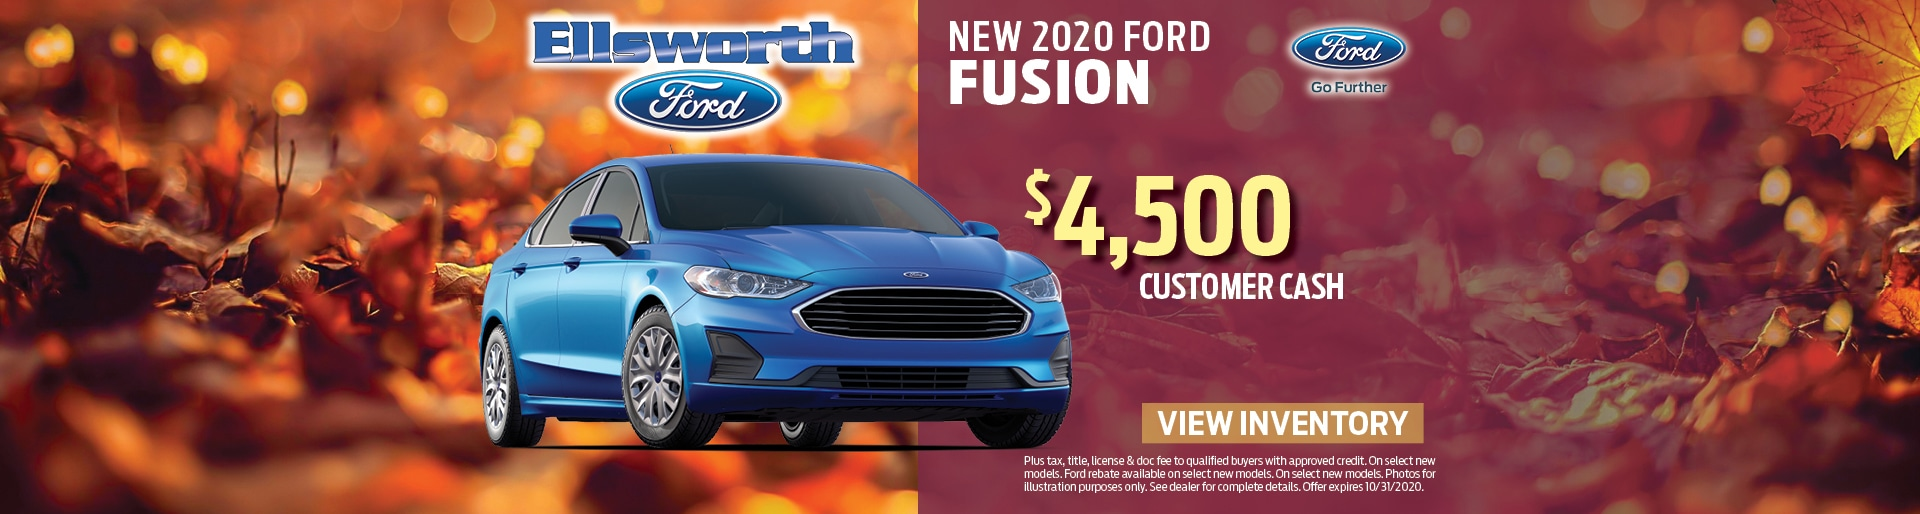 New 2020 Ford Fusion Customer Cash | Ellsworth, WI